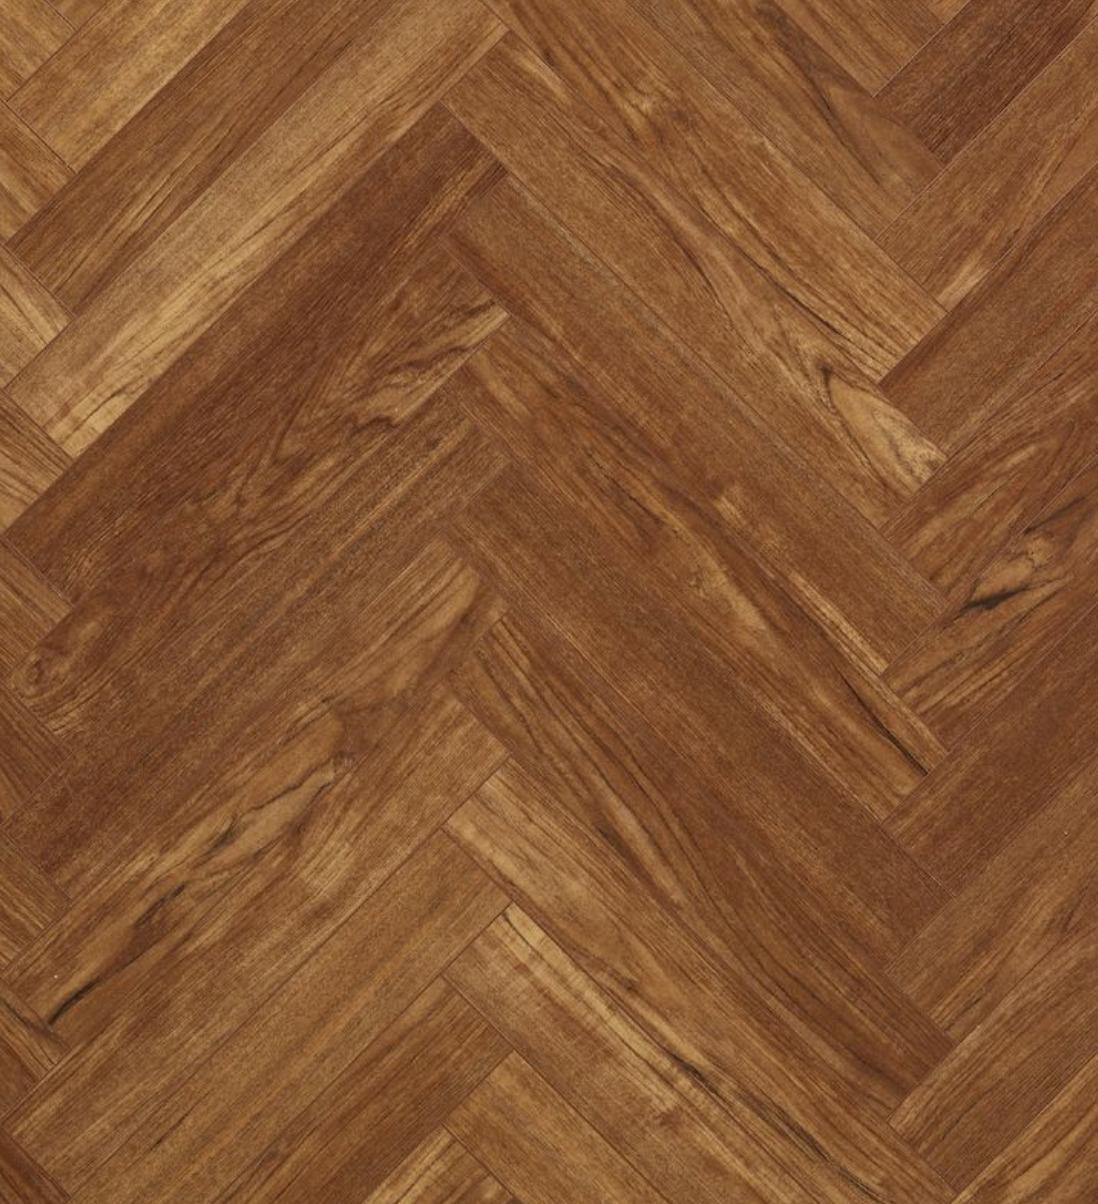 Berry Alloc Chateau Teak Brown Parquet Herringbone Laminate Flooring